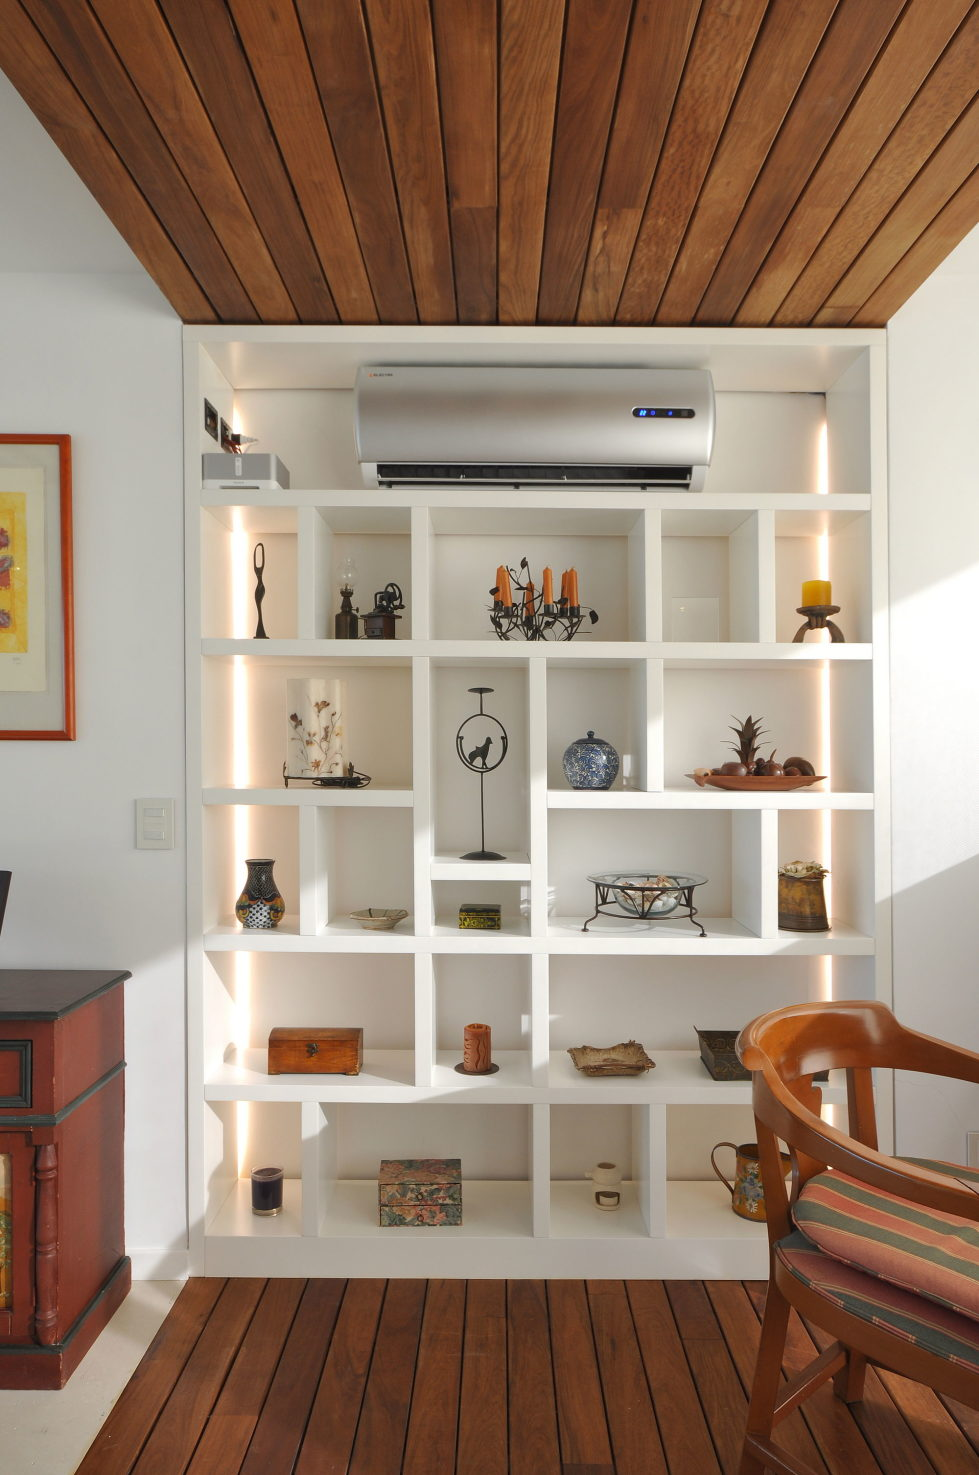 frame-the-residence-in-argentina-17